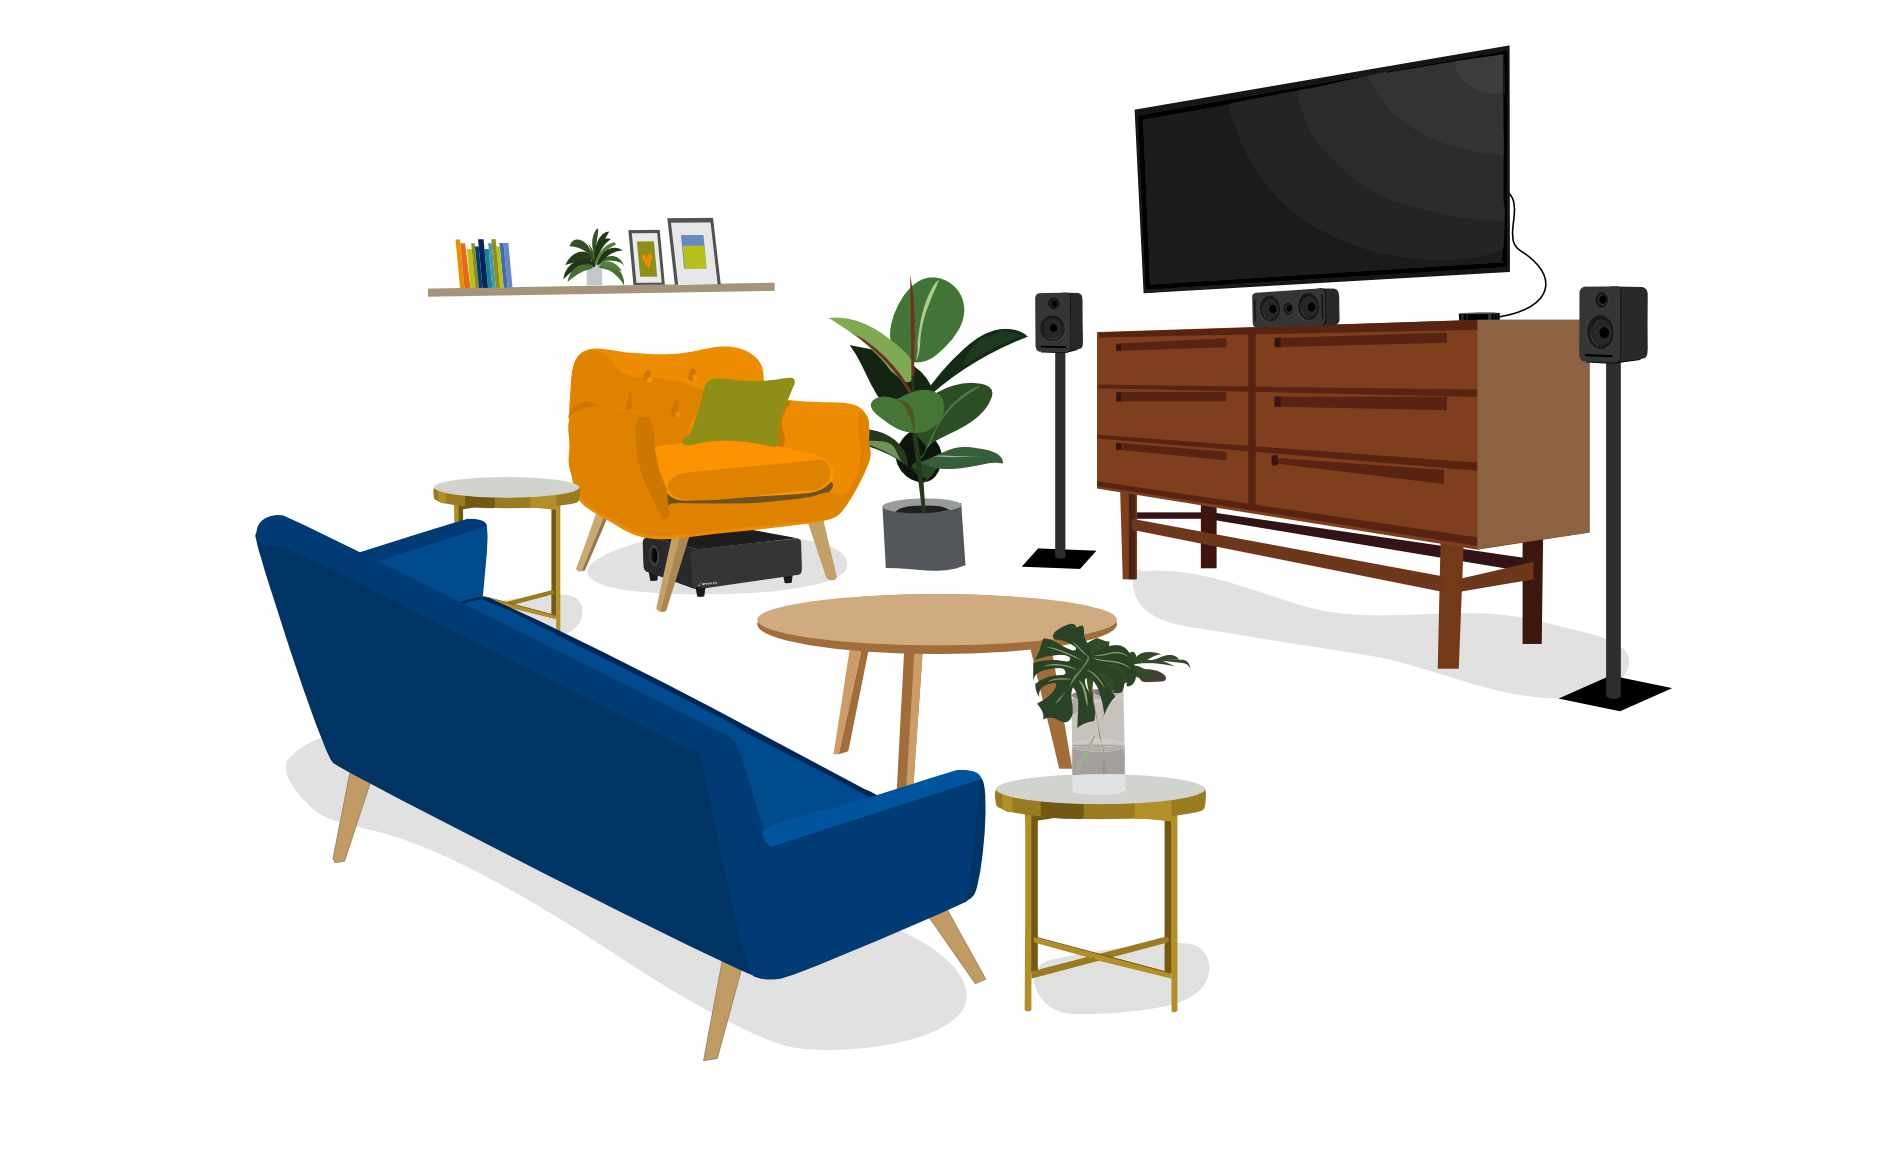 pastel living room illustration with platin monaco 3.1 speaker setup